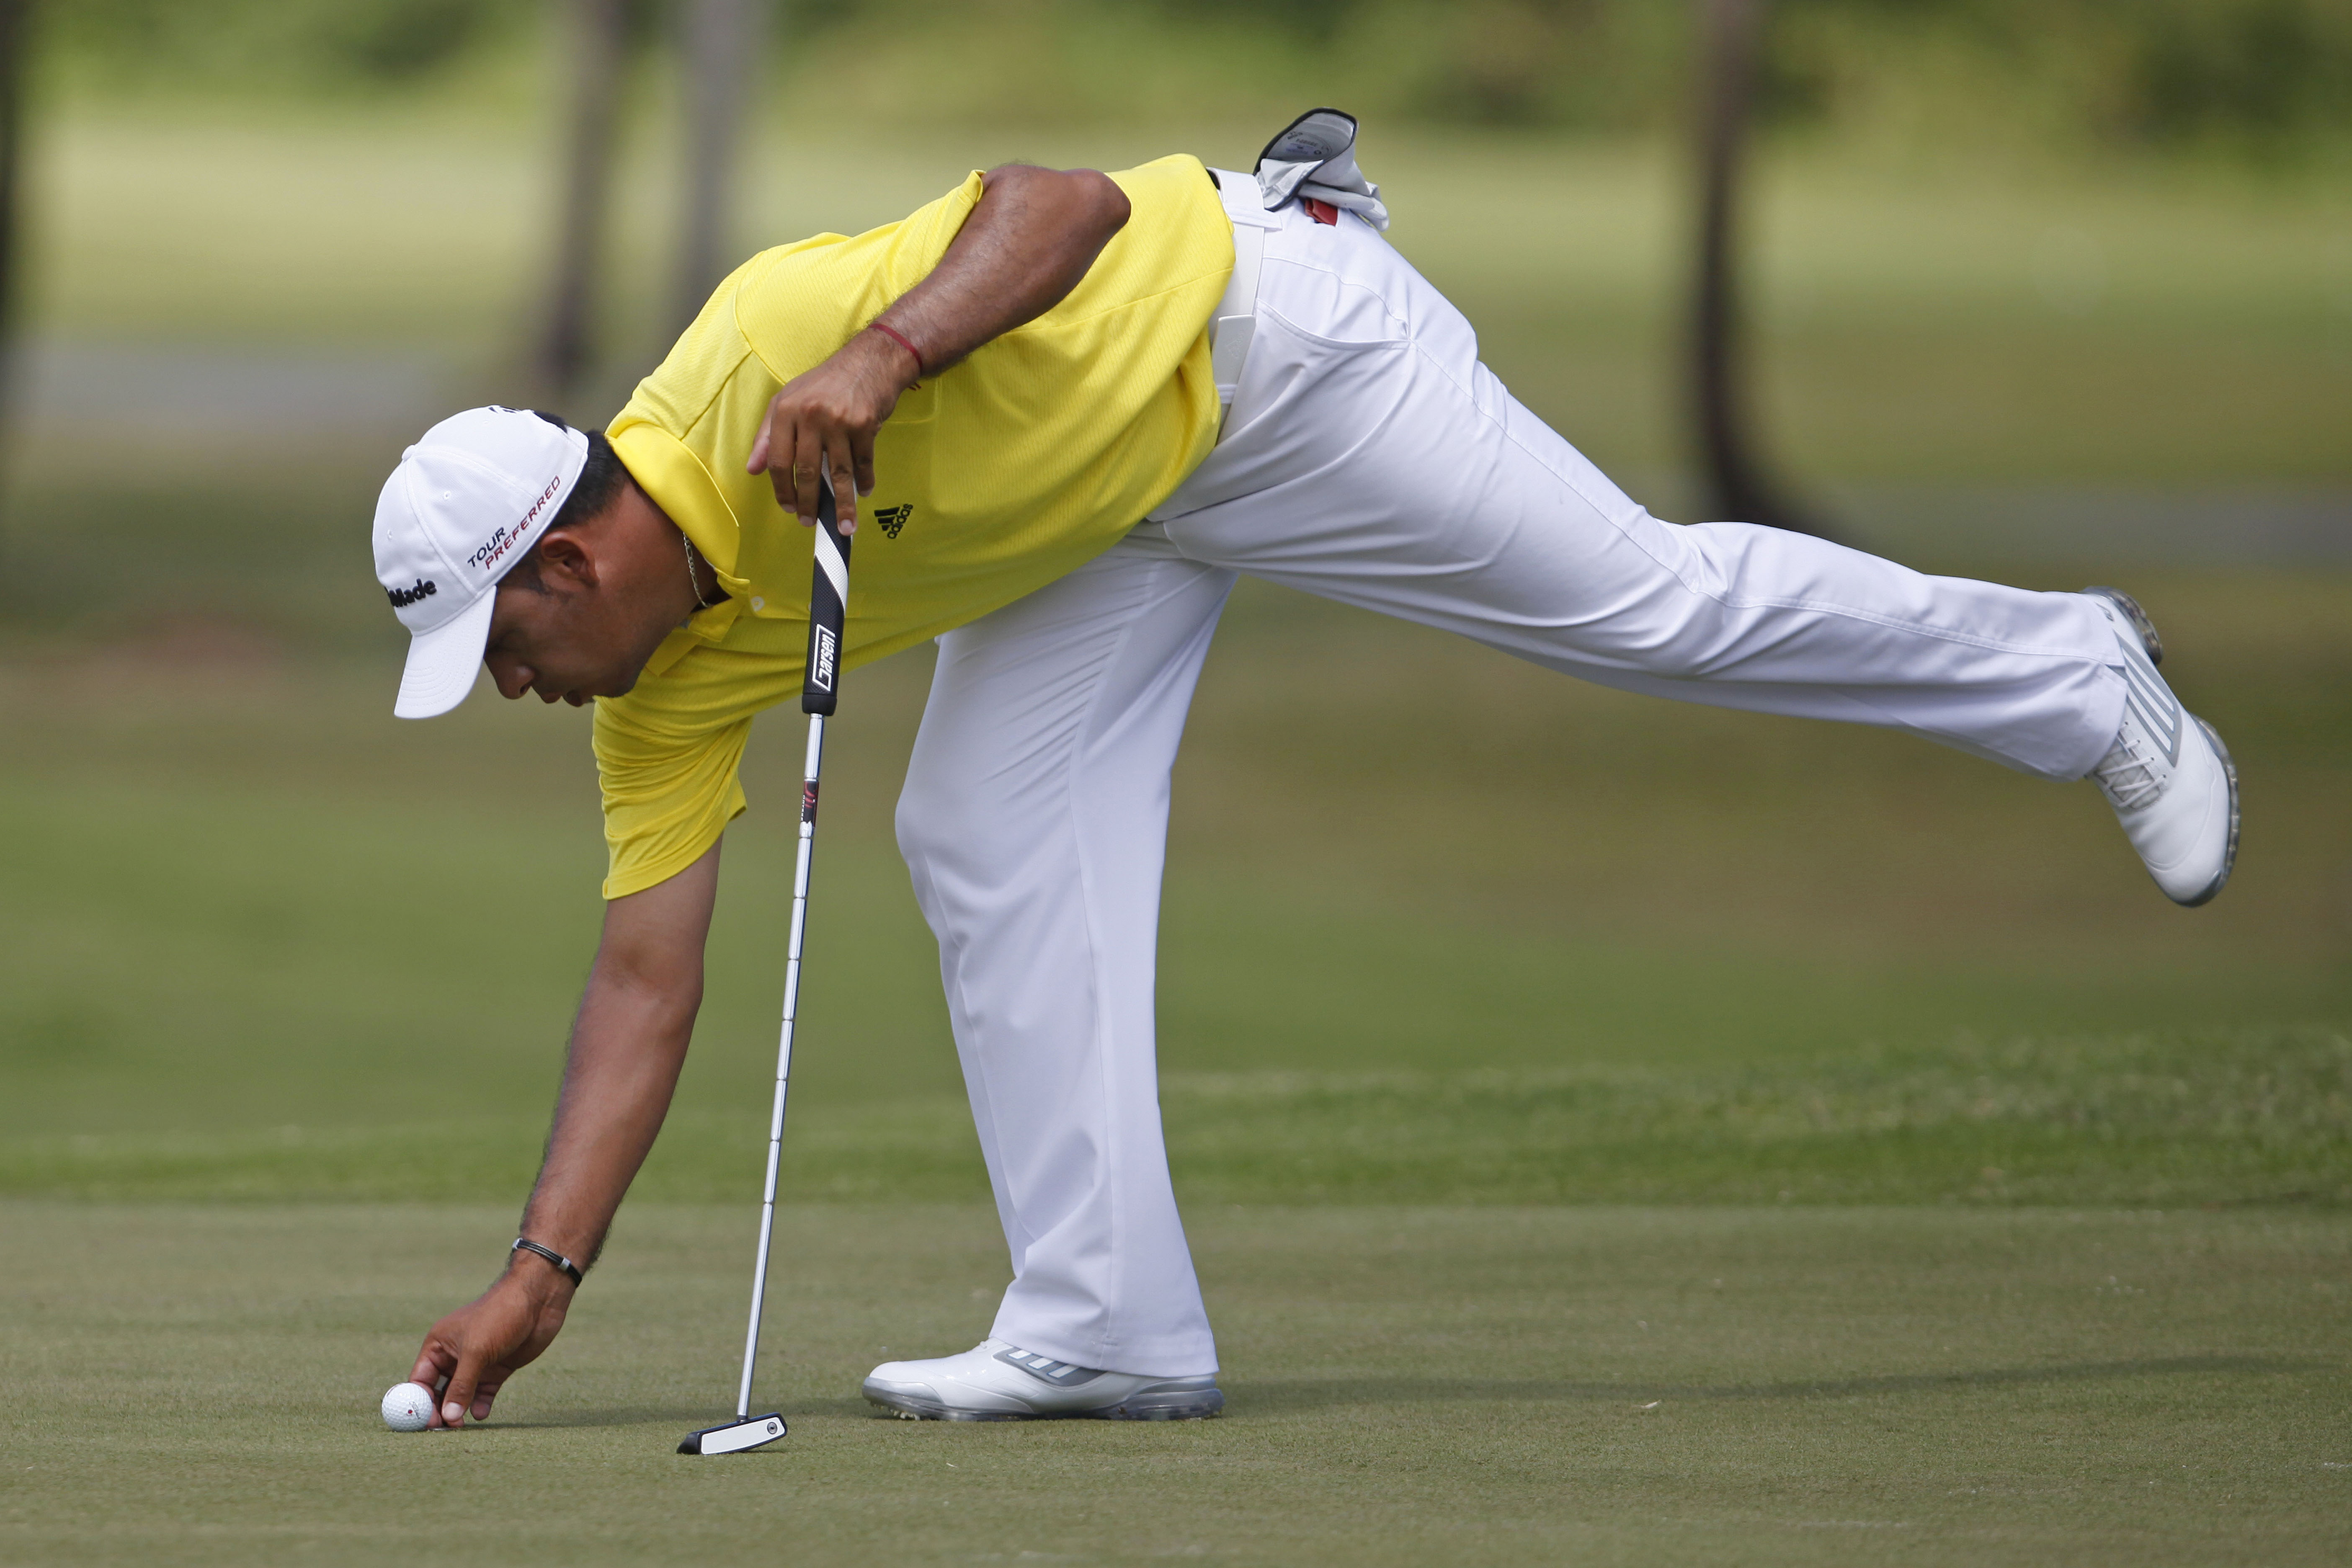 Argentinas Miguel Angel Carballo marks his ball on the putting green of the first hole during the second round of the Puerto Rico Open PGA golf tournament in Rio Grande, Puerto Rico, Friday, March 7, 2014. (AP Photo/Ricardo Arduengo)